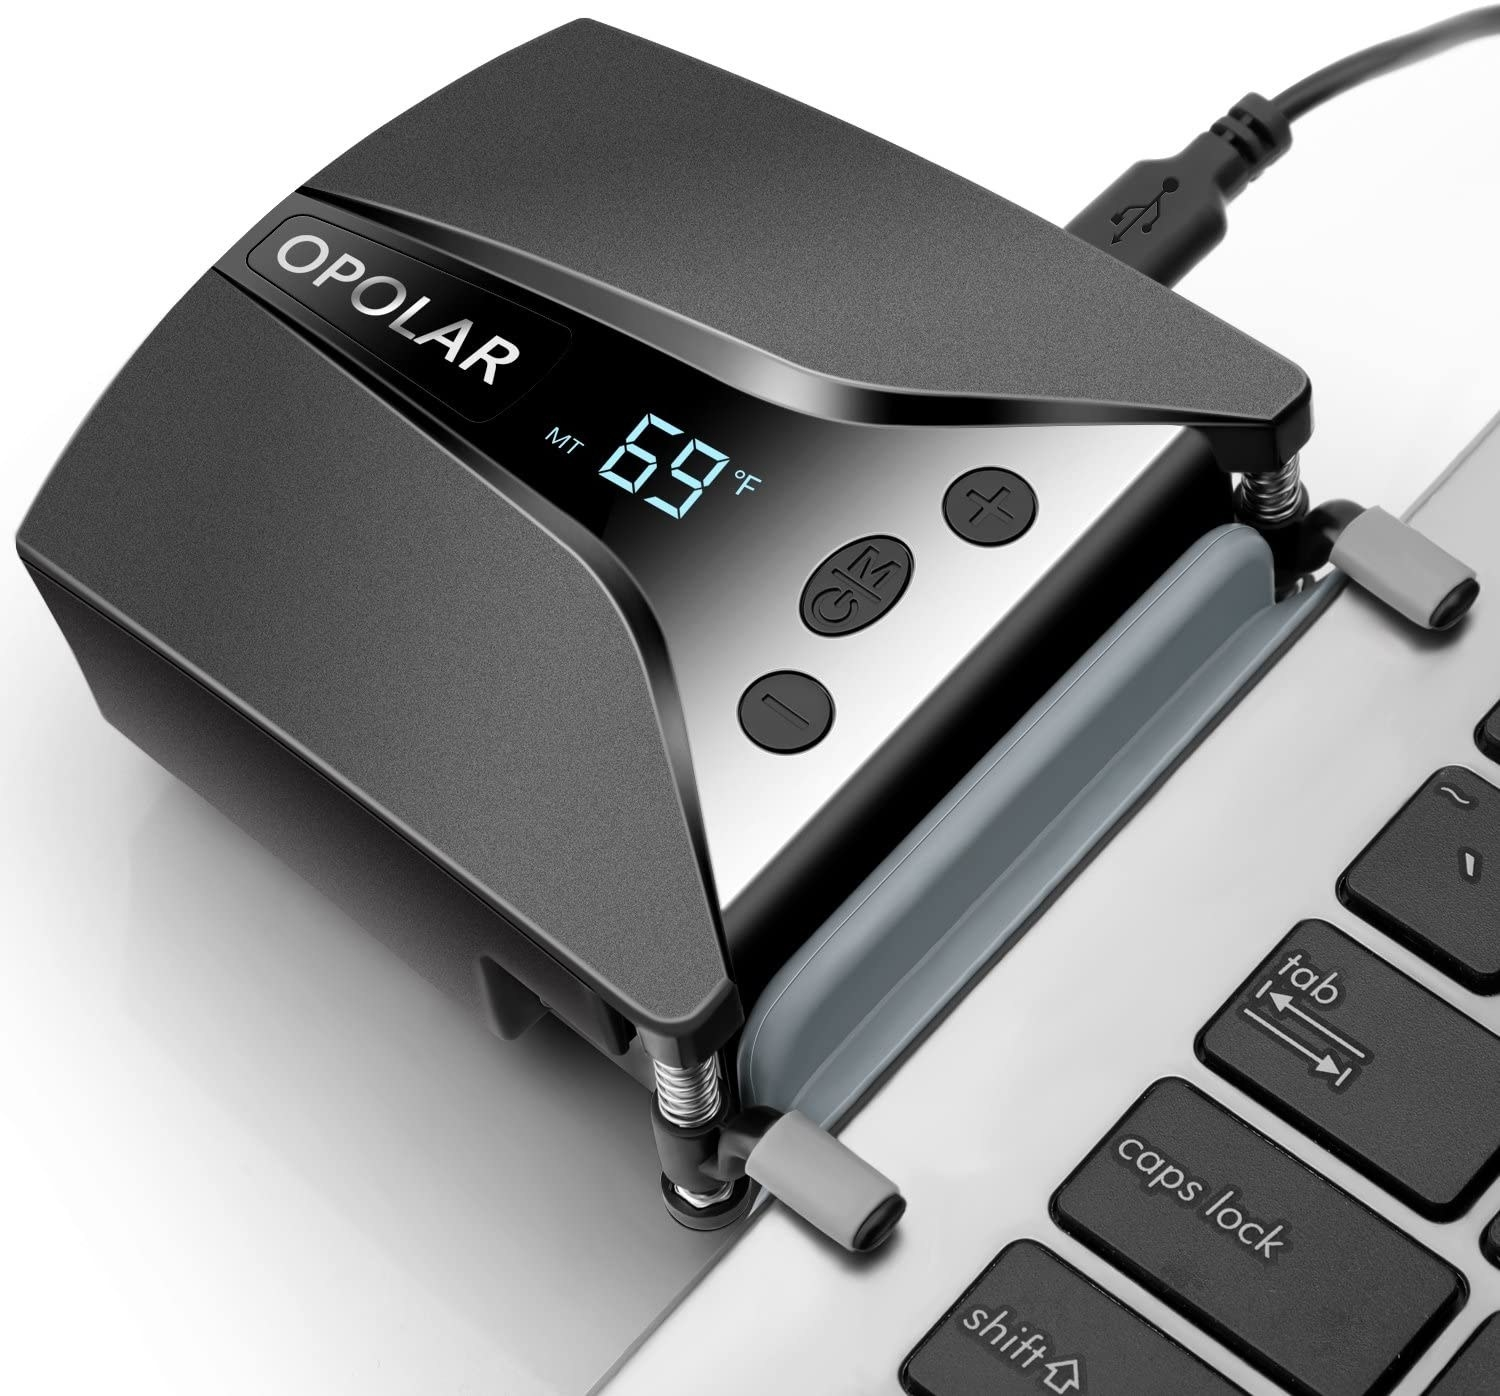 A laptop-cooling gadget clipped to the side of a laptop